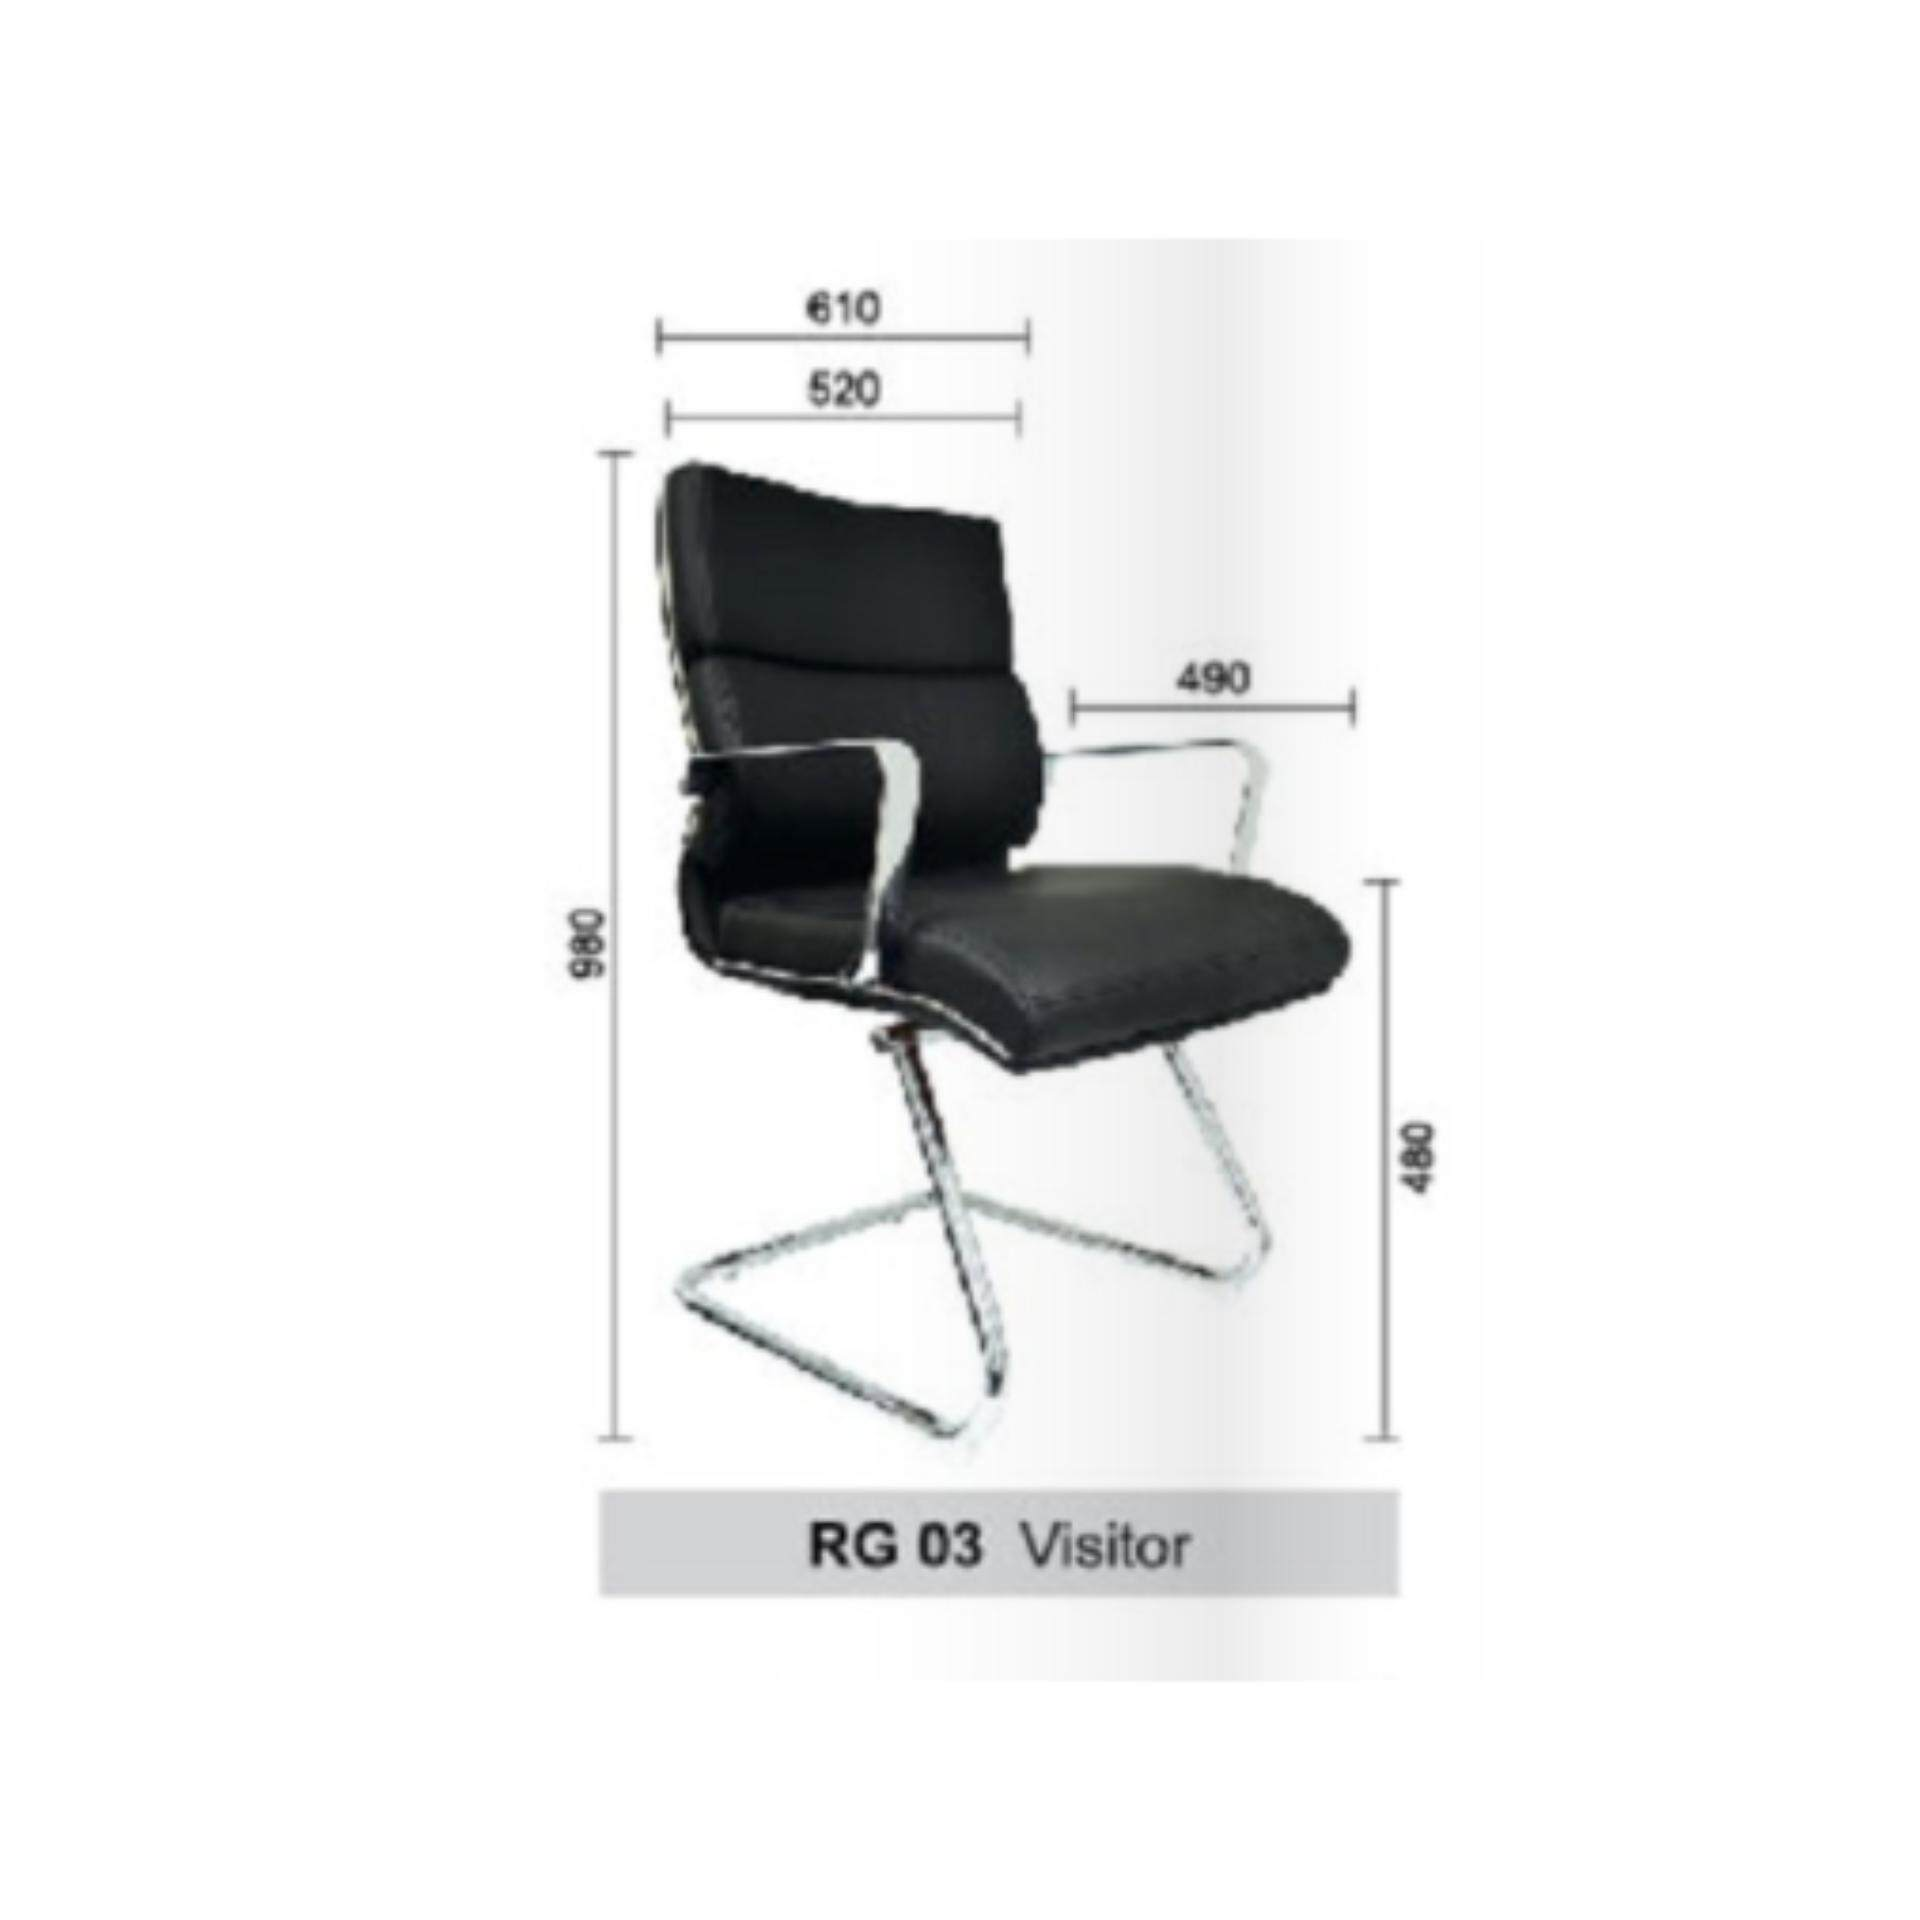 Deco Regalia Office Chairs Leather Executive Low Back Computer Desk Non-Swivel Chair ( Black Color ) Pre-Order 2 Weeks